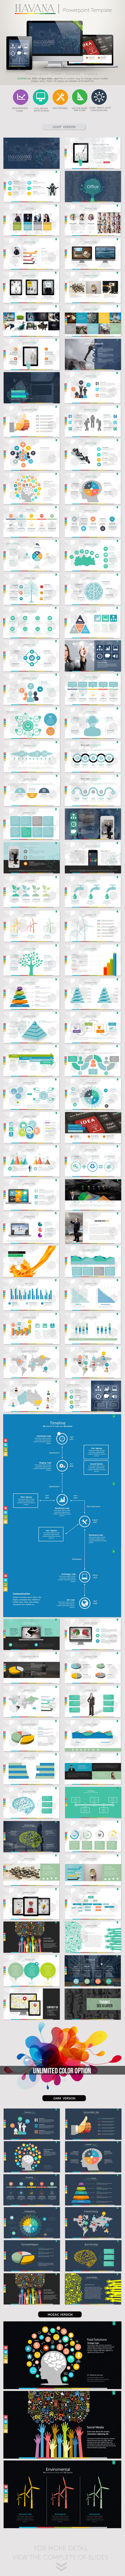 Havana PowerPoint Presentation - Business PowerPoint Templates